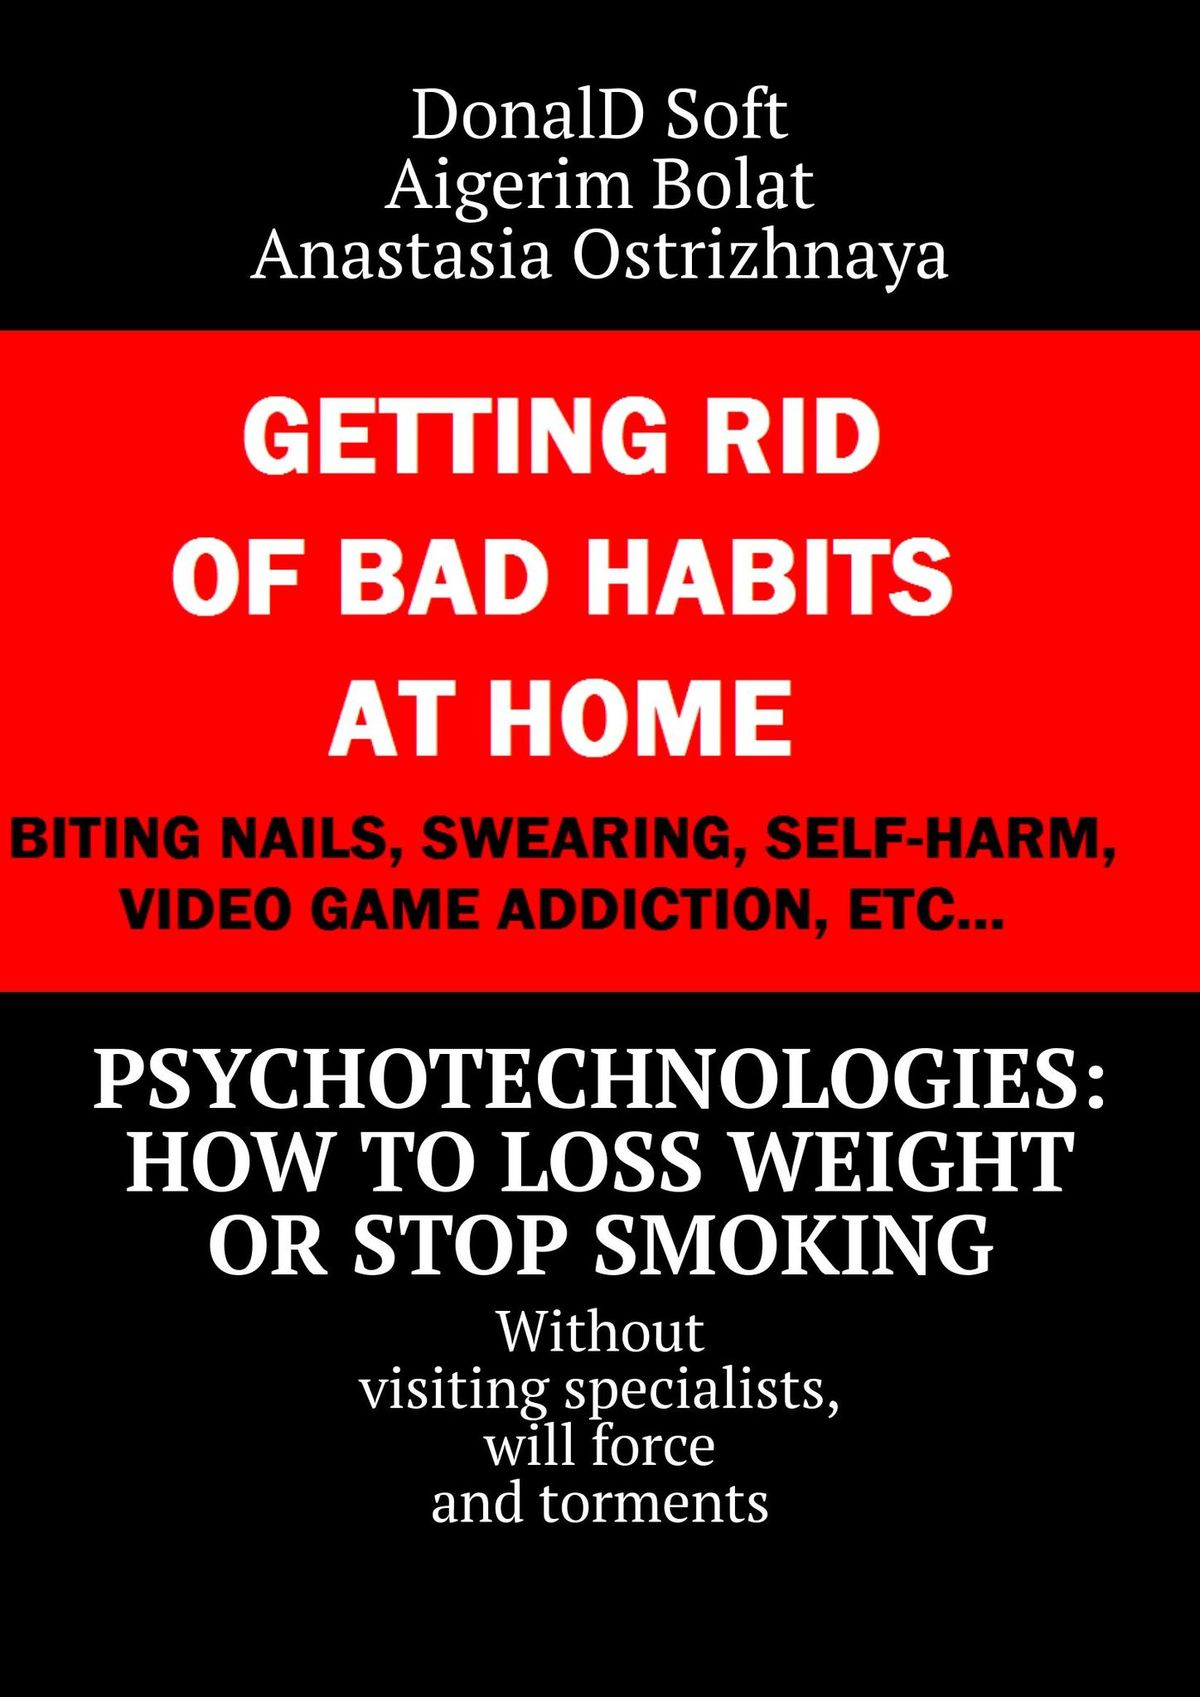 DonalD Soft Russian psycho technologies: how to loss weight or stop smoking. without visiting specialists, will force and torments safe from harm